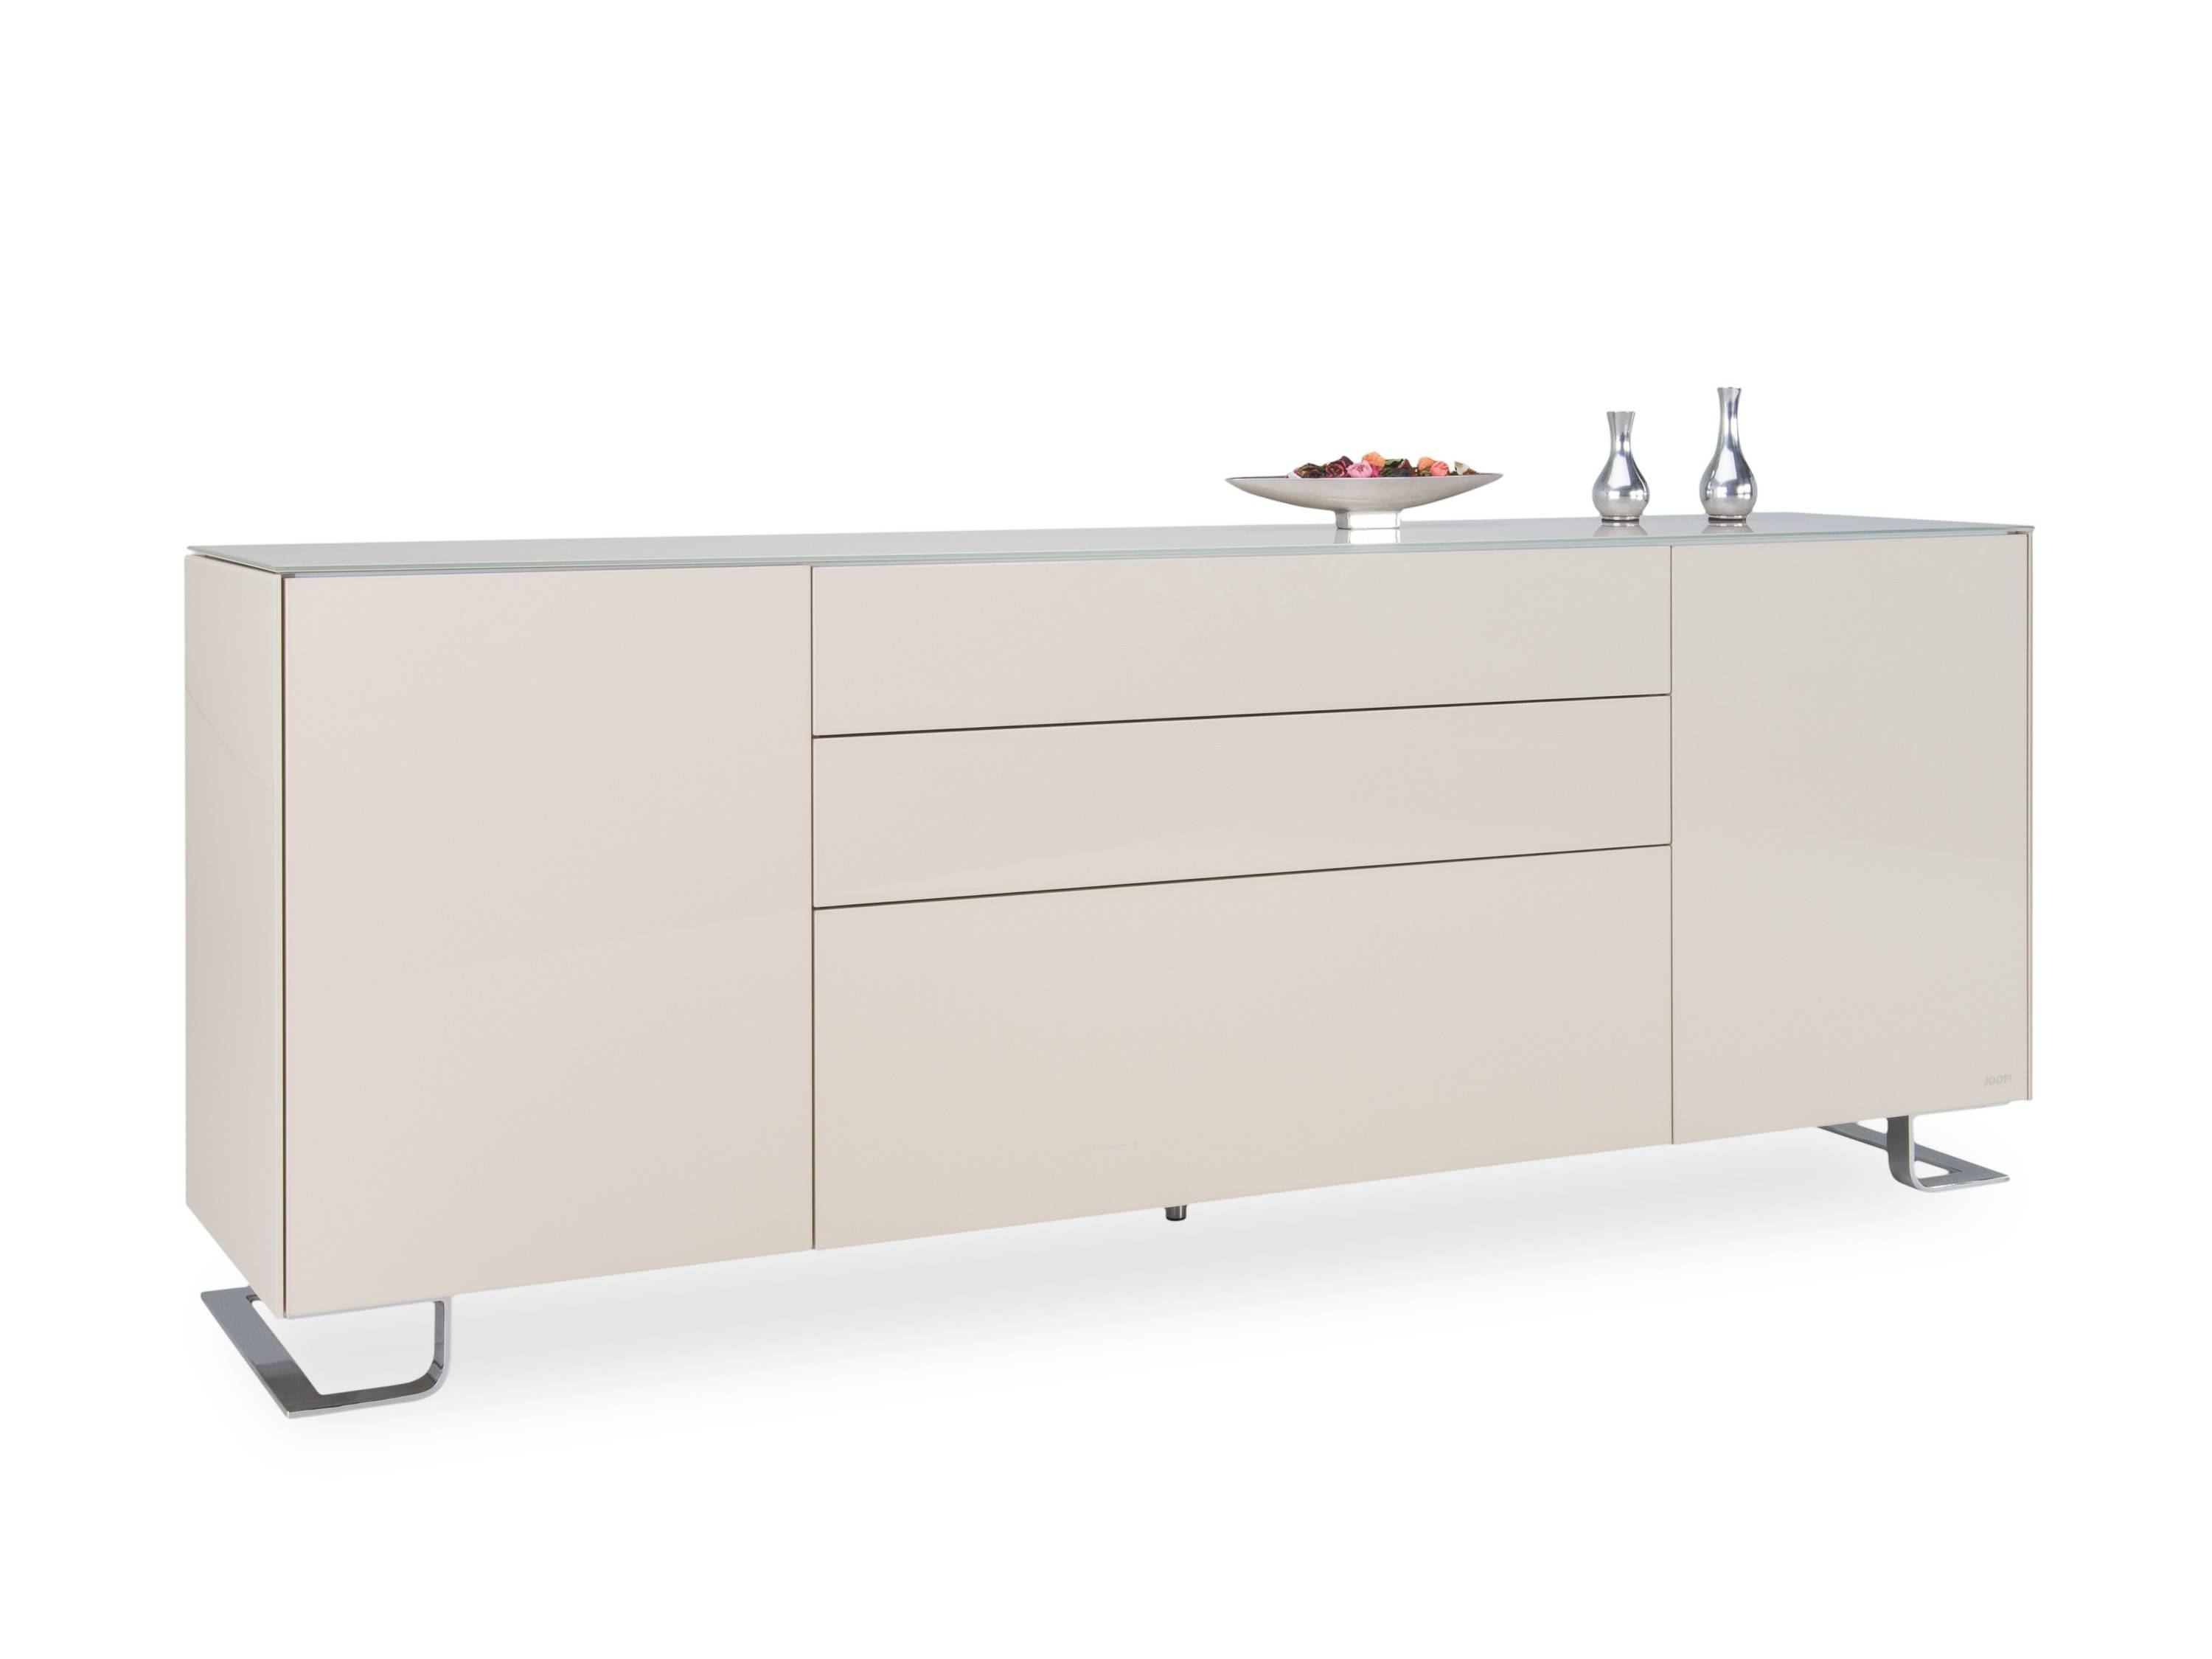 Sideboards Lugano Sideboard Braun Walnuss Interior 15 Collection Of Joop Sideboards